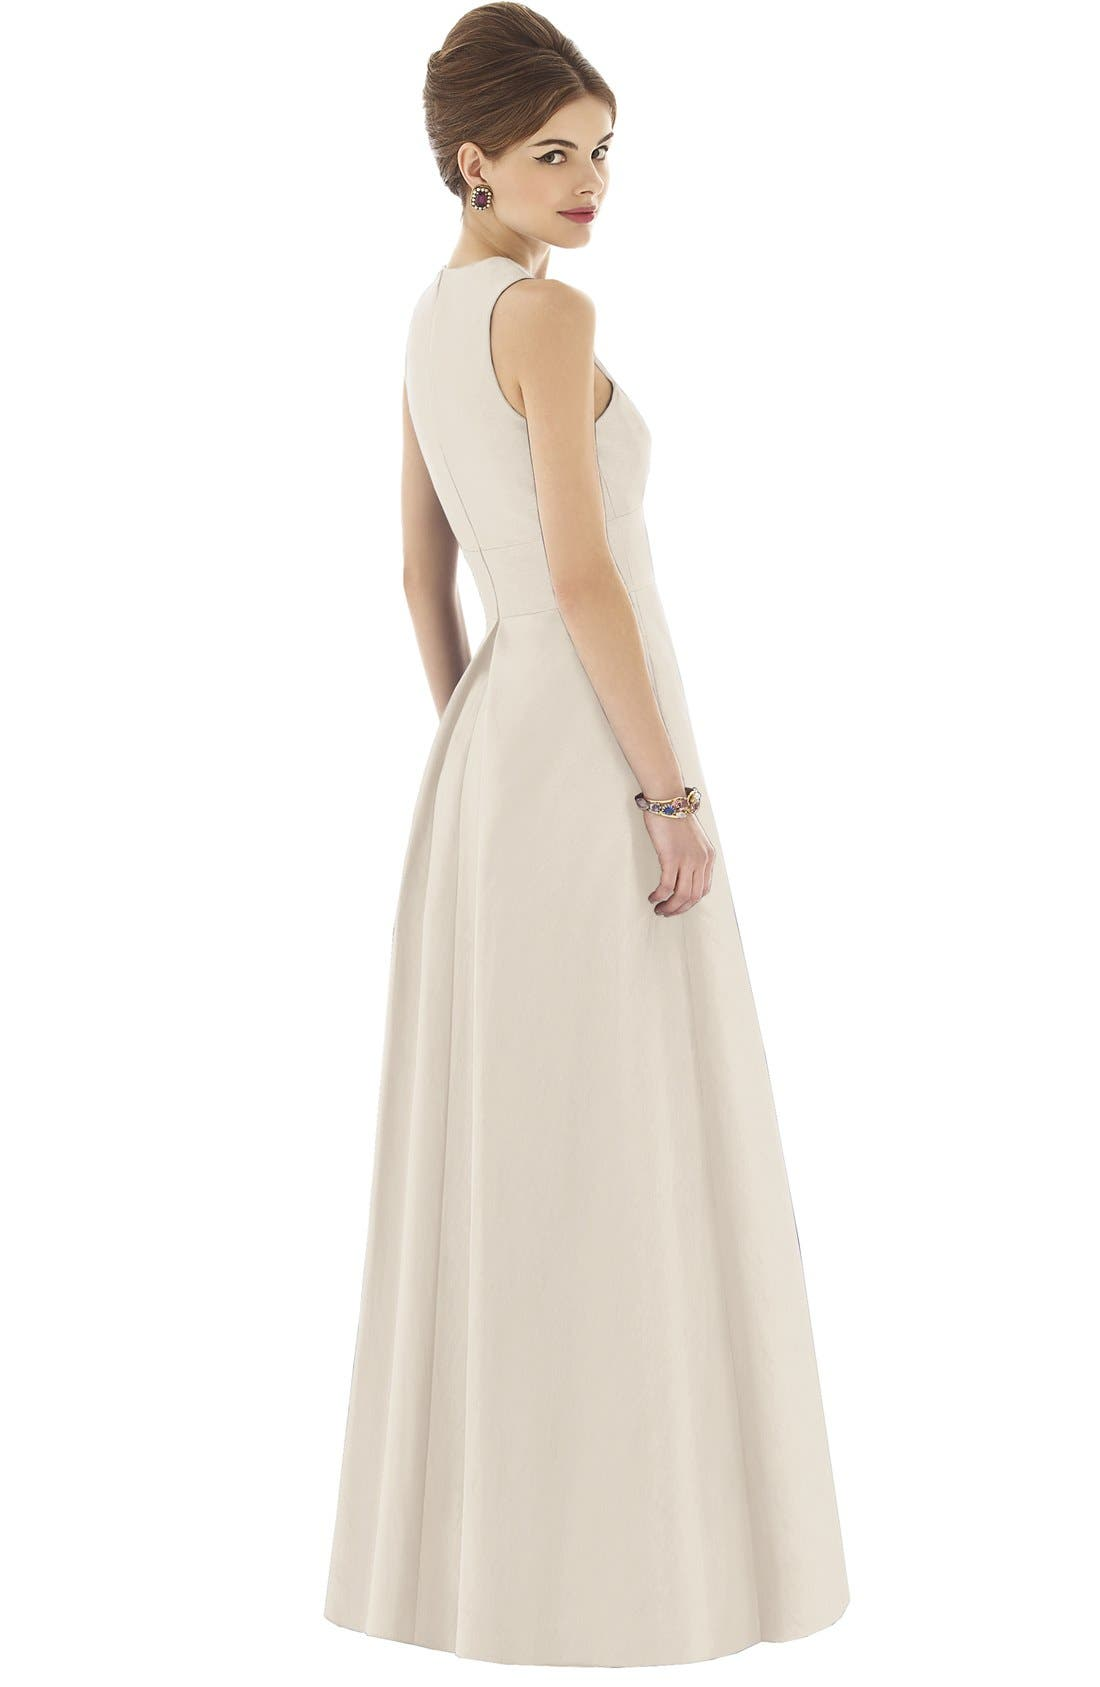 89fae6099c5 Women s Bridesmaid Dresses